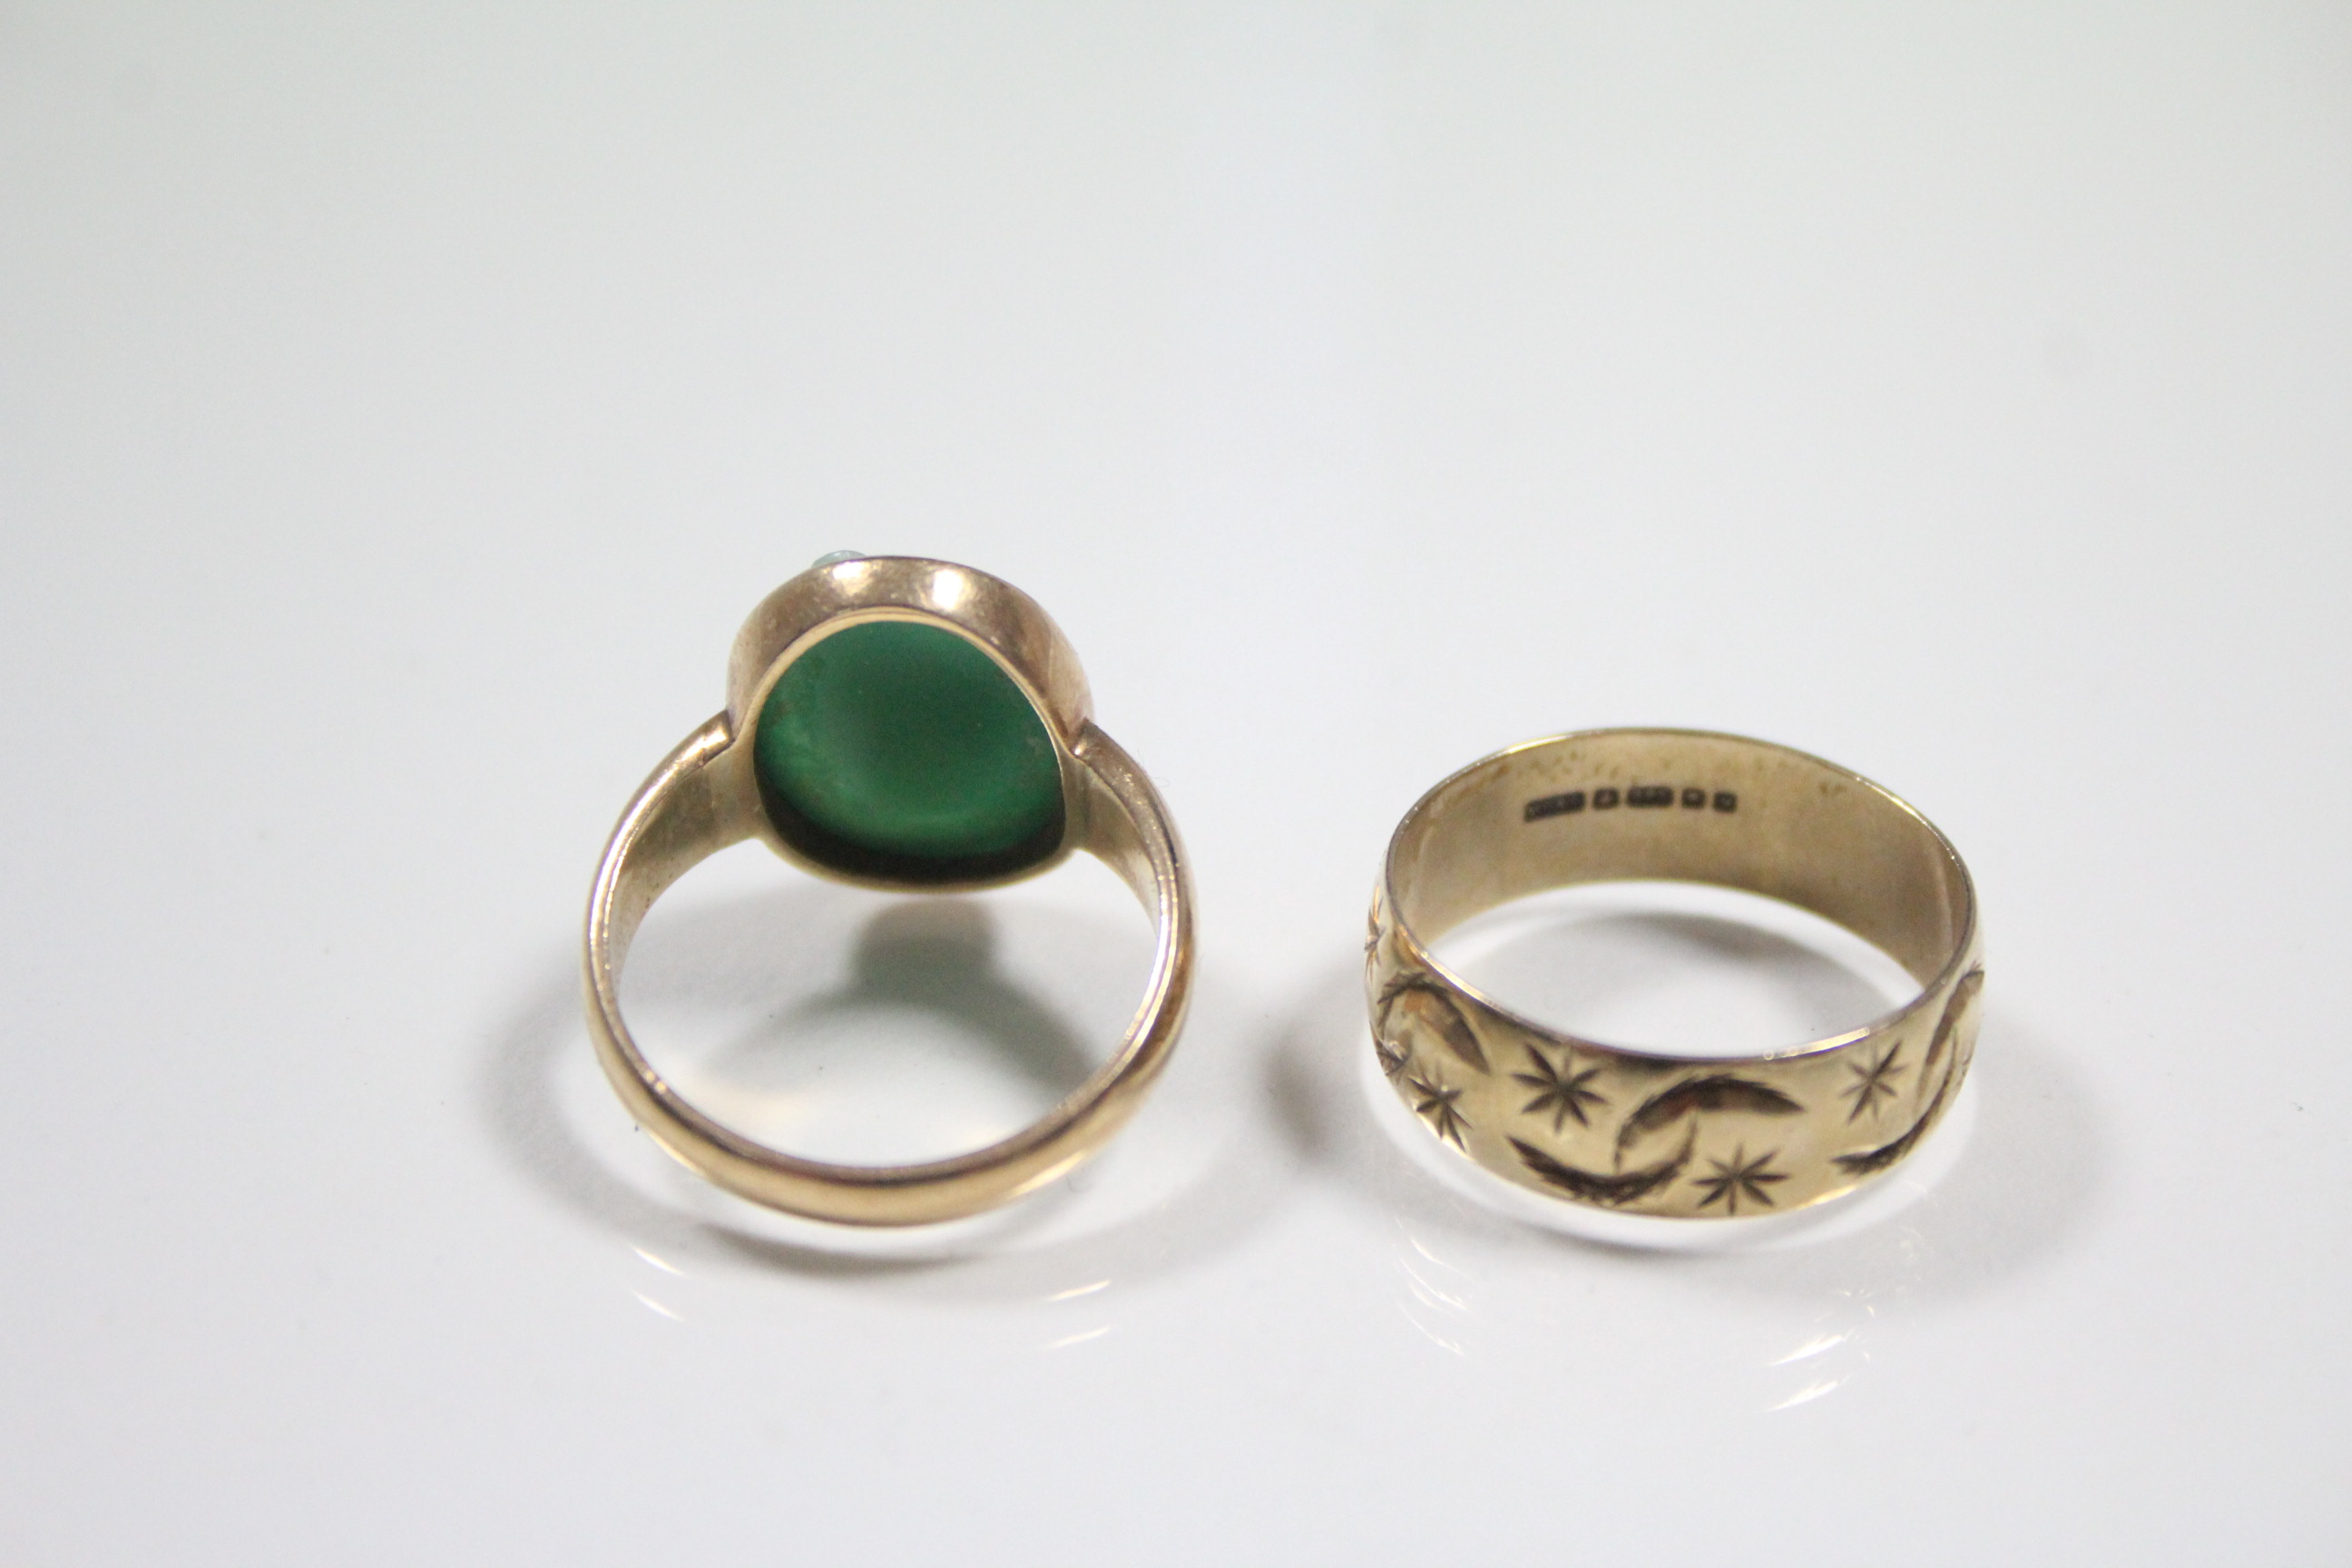 Lot 52 - A 15ct. gold ring set green & white-overlaid glass oval cameo of a female bust; & a 9ct. gold